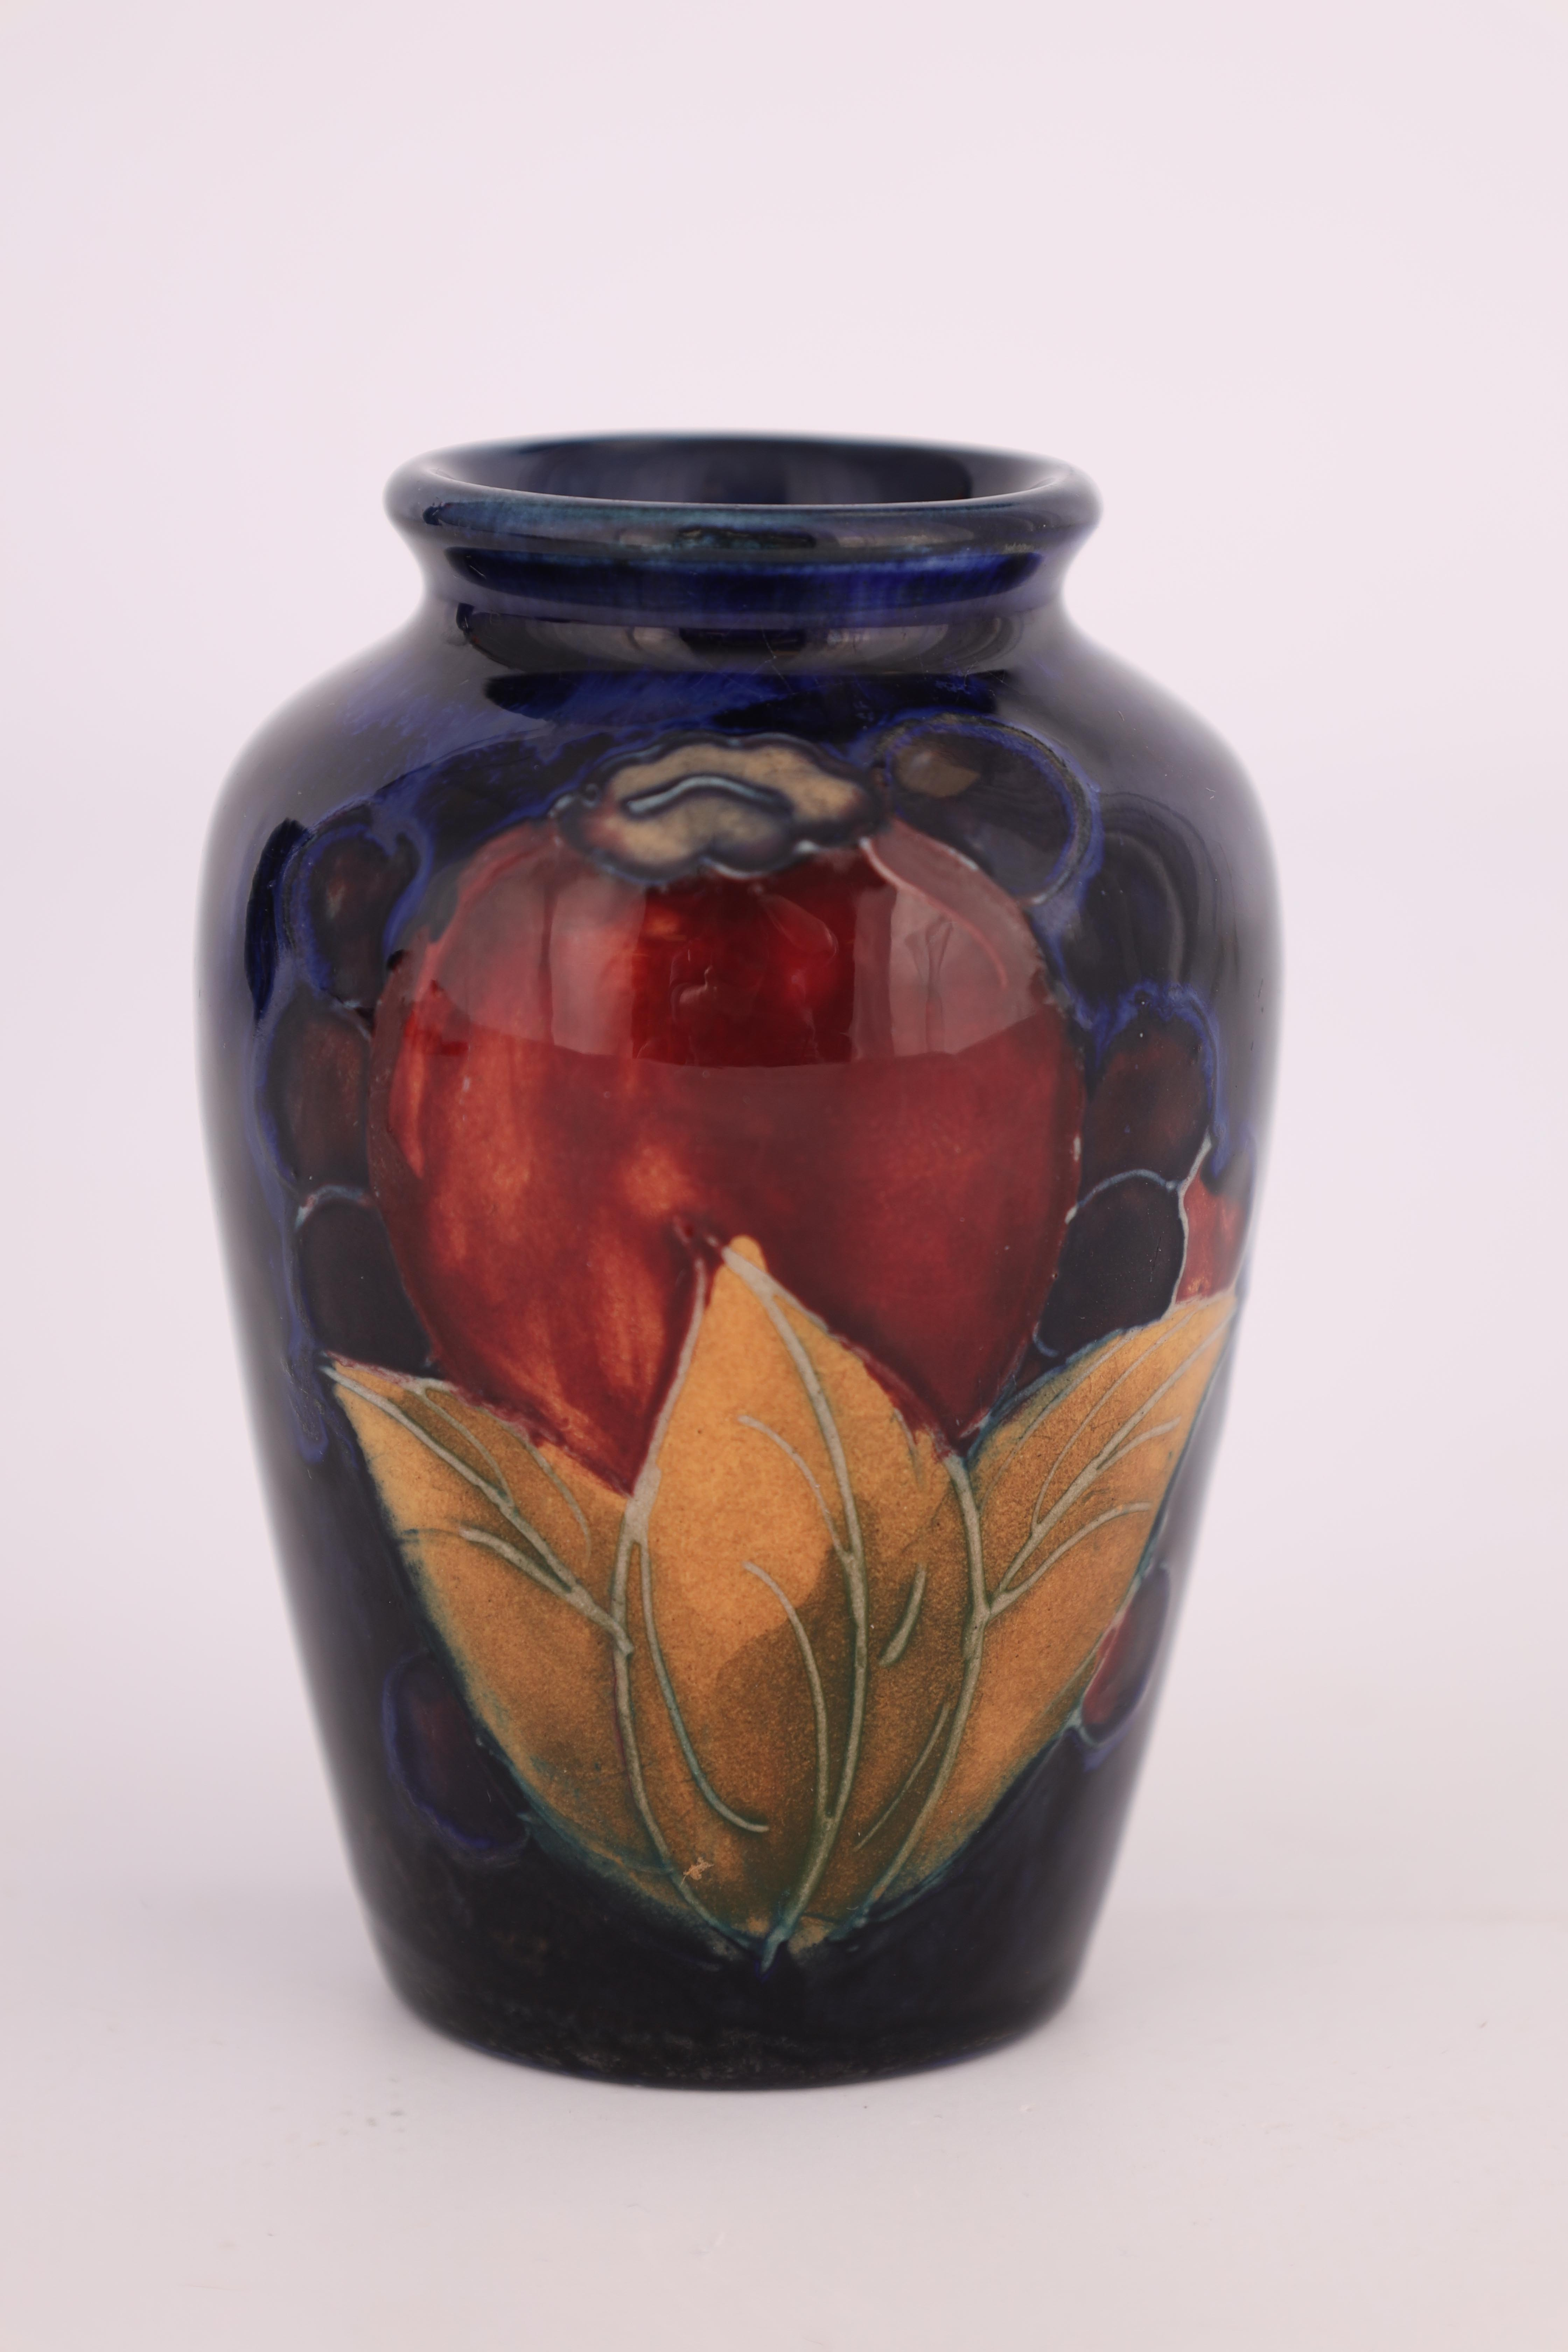 A 1930S MOORCROFT SMALL SHOULDERED OVOID VASE decorated in the Pomegranate pattern on a dark mottled - Image 3 of 4